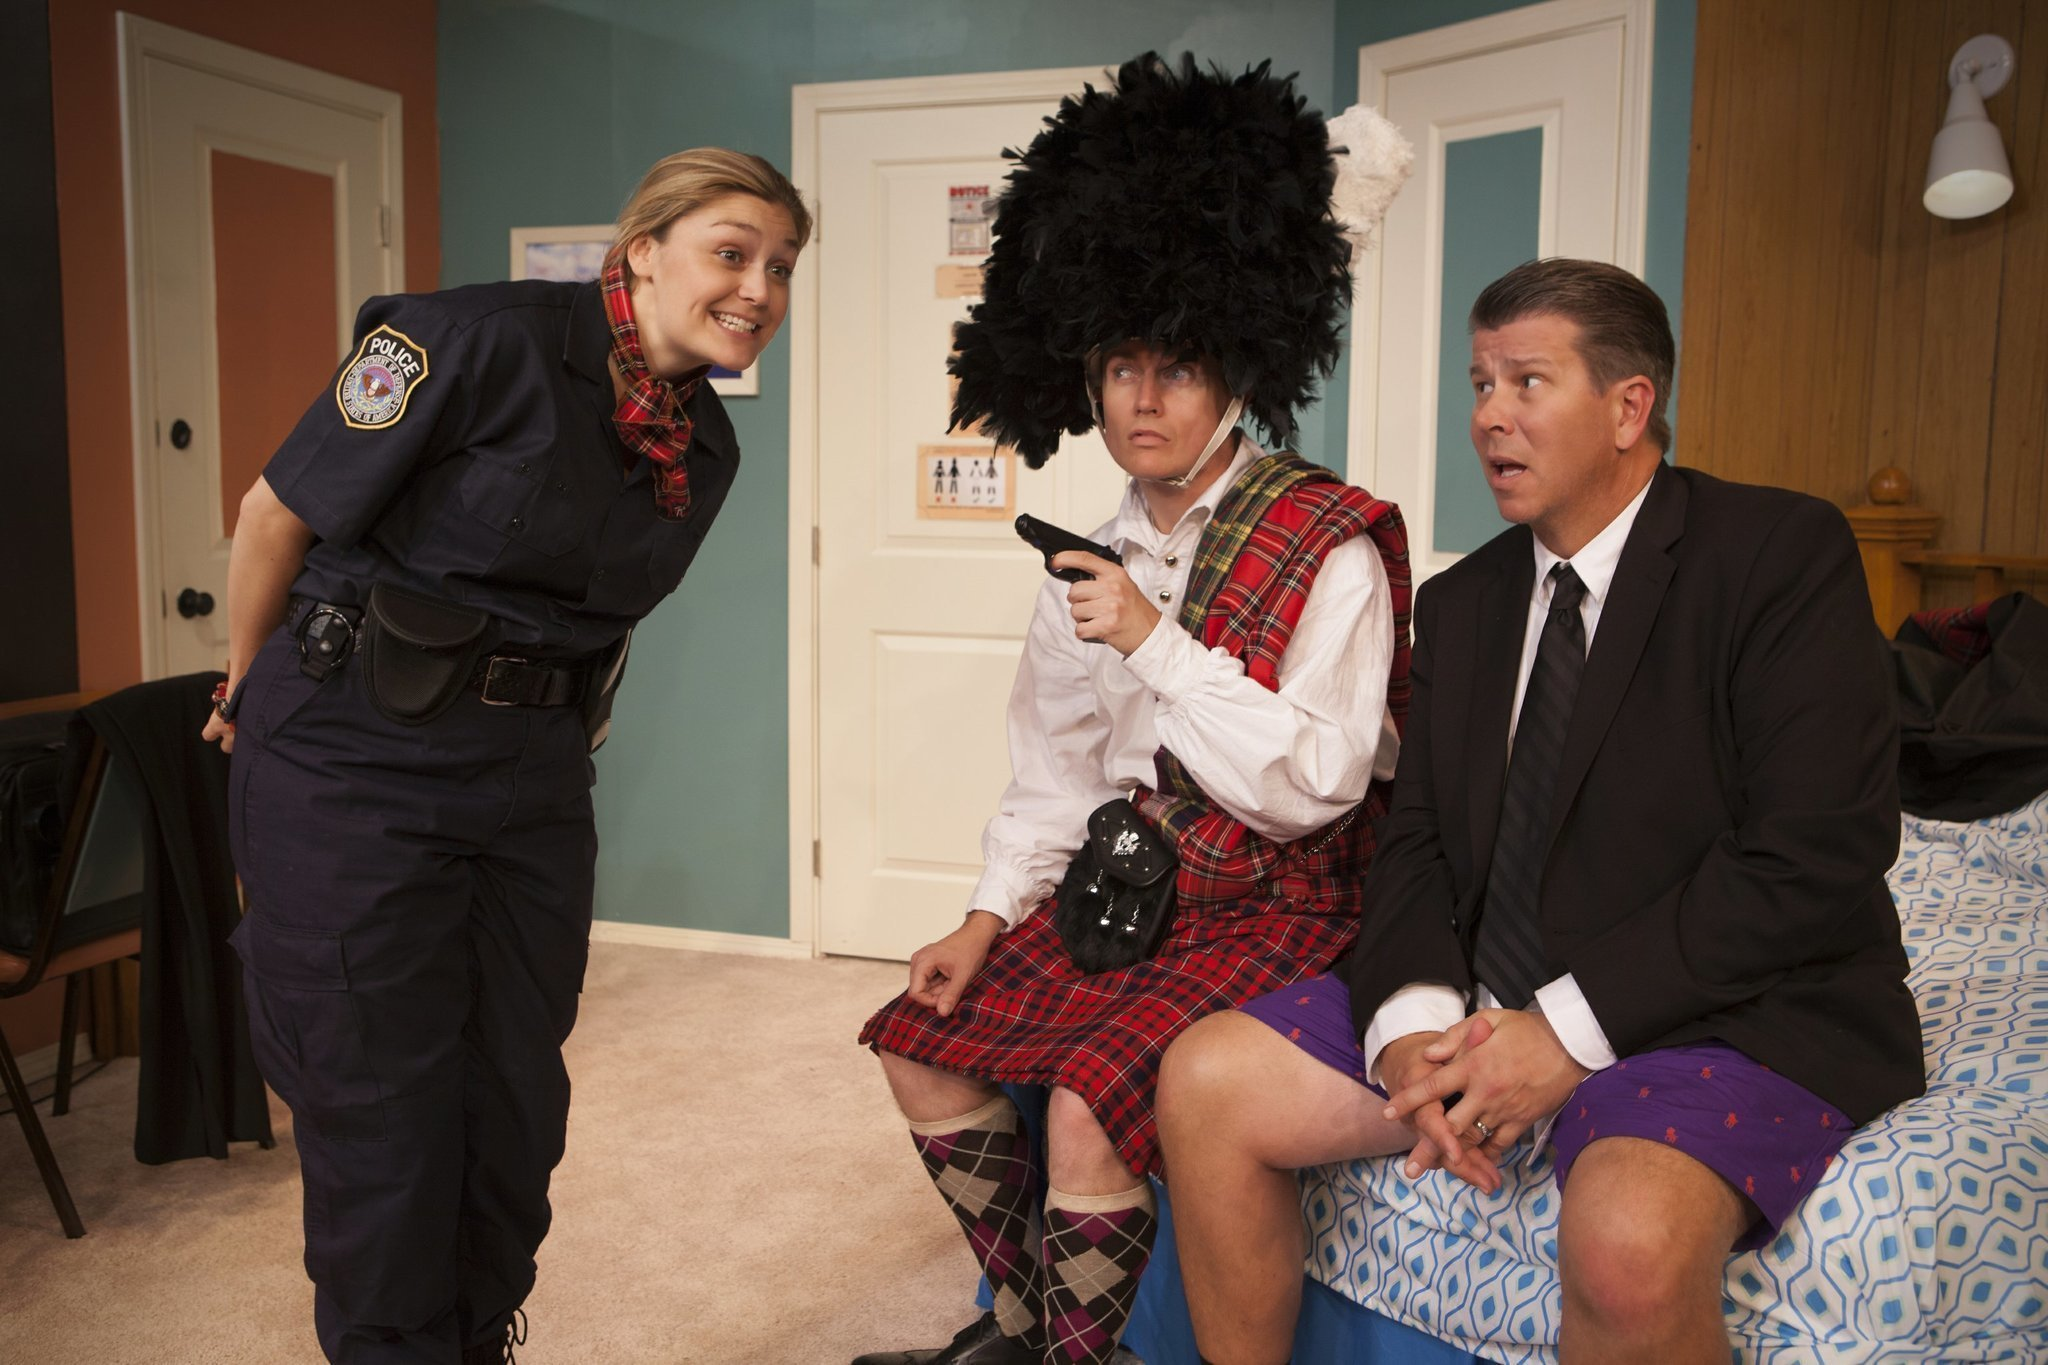 Unnecessary farce earns laughs at north coast rep the for Farcical satire